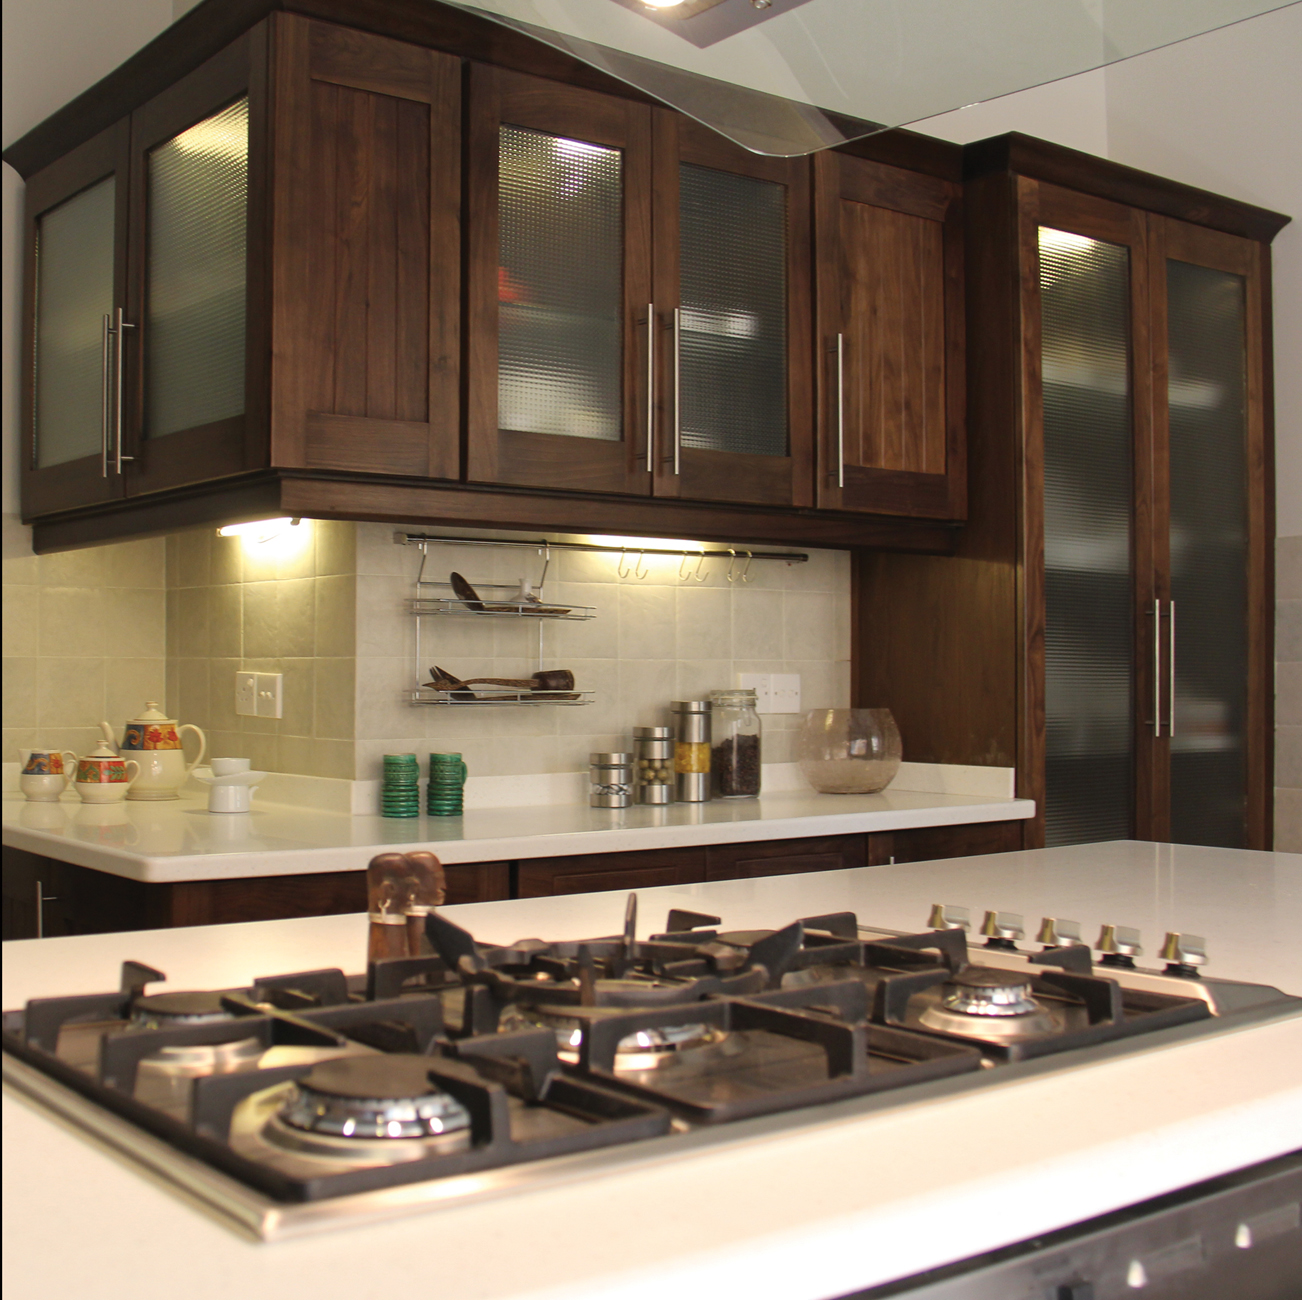 Domestic Kitchens Details